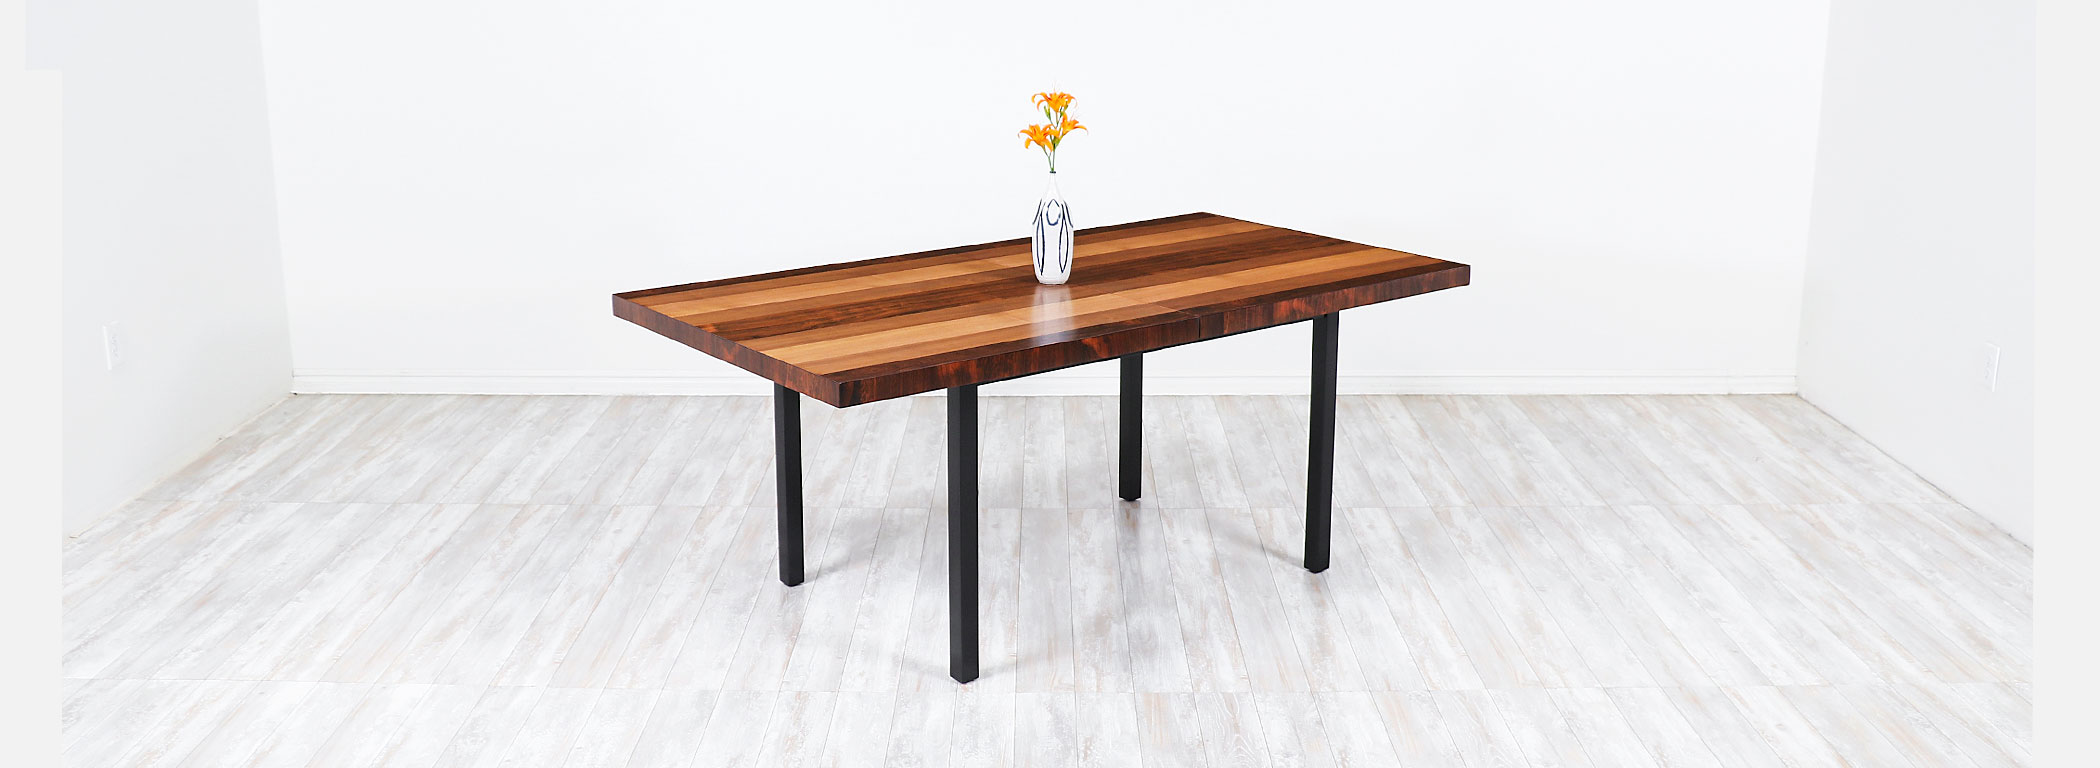 Milo Baughman Expanding Multi-Wood Dining Table for Directional  Image